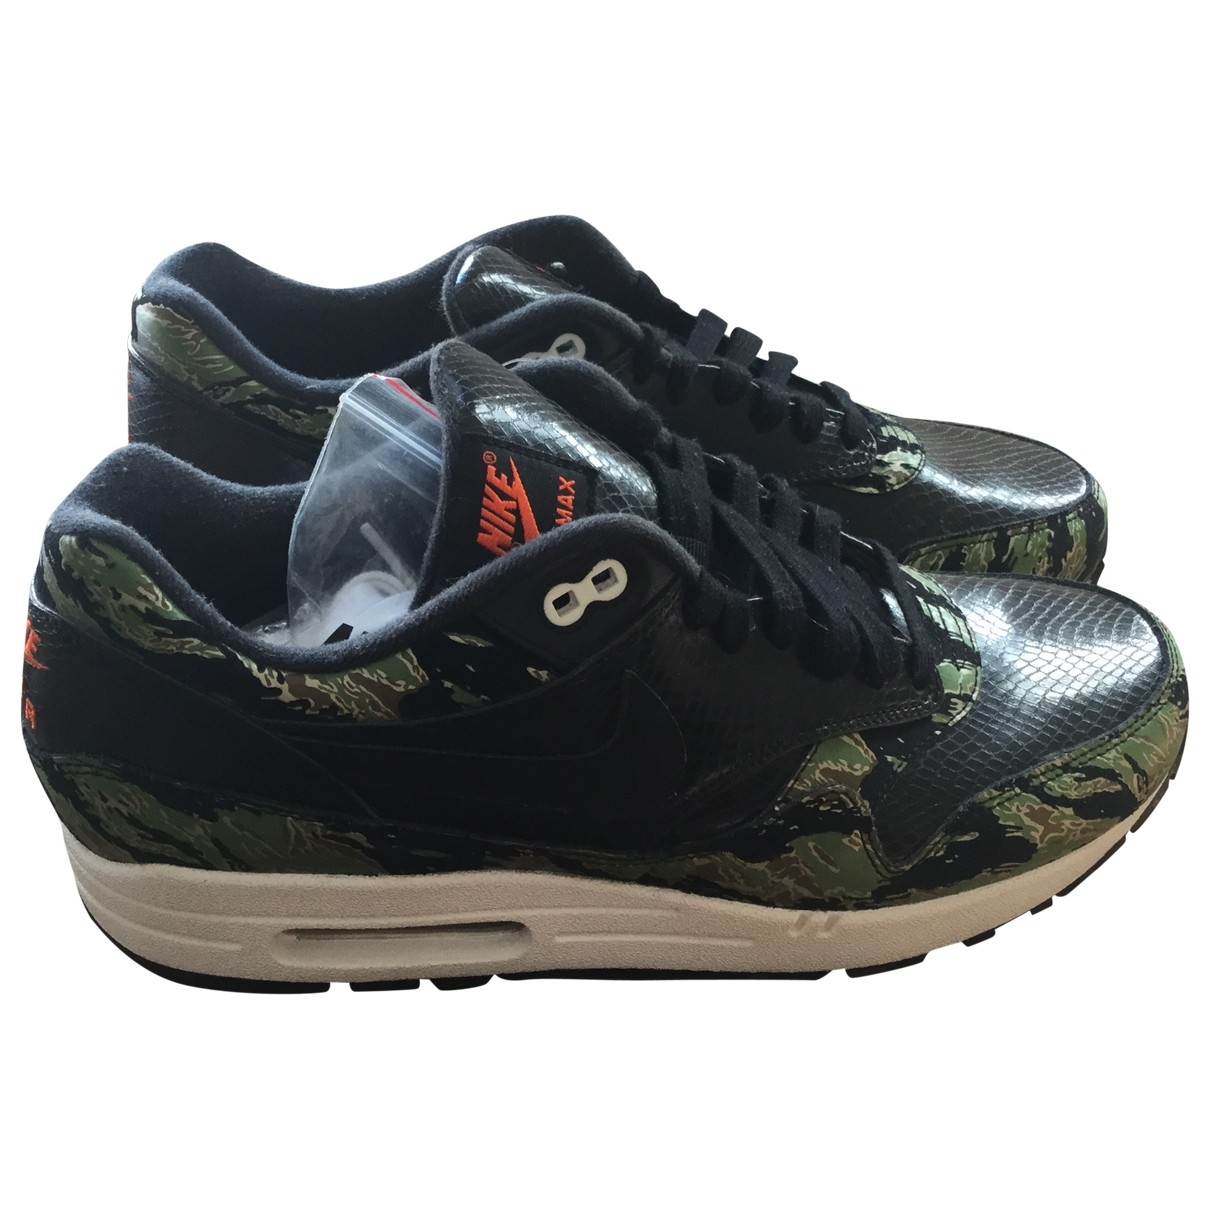 Nike Air Max 1 Black Exotic leathers Trainers for Men 44 EU